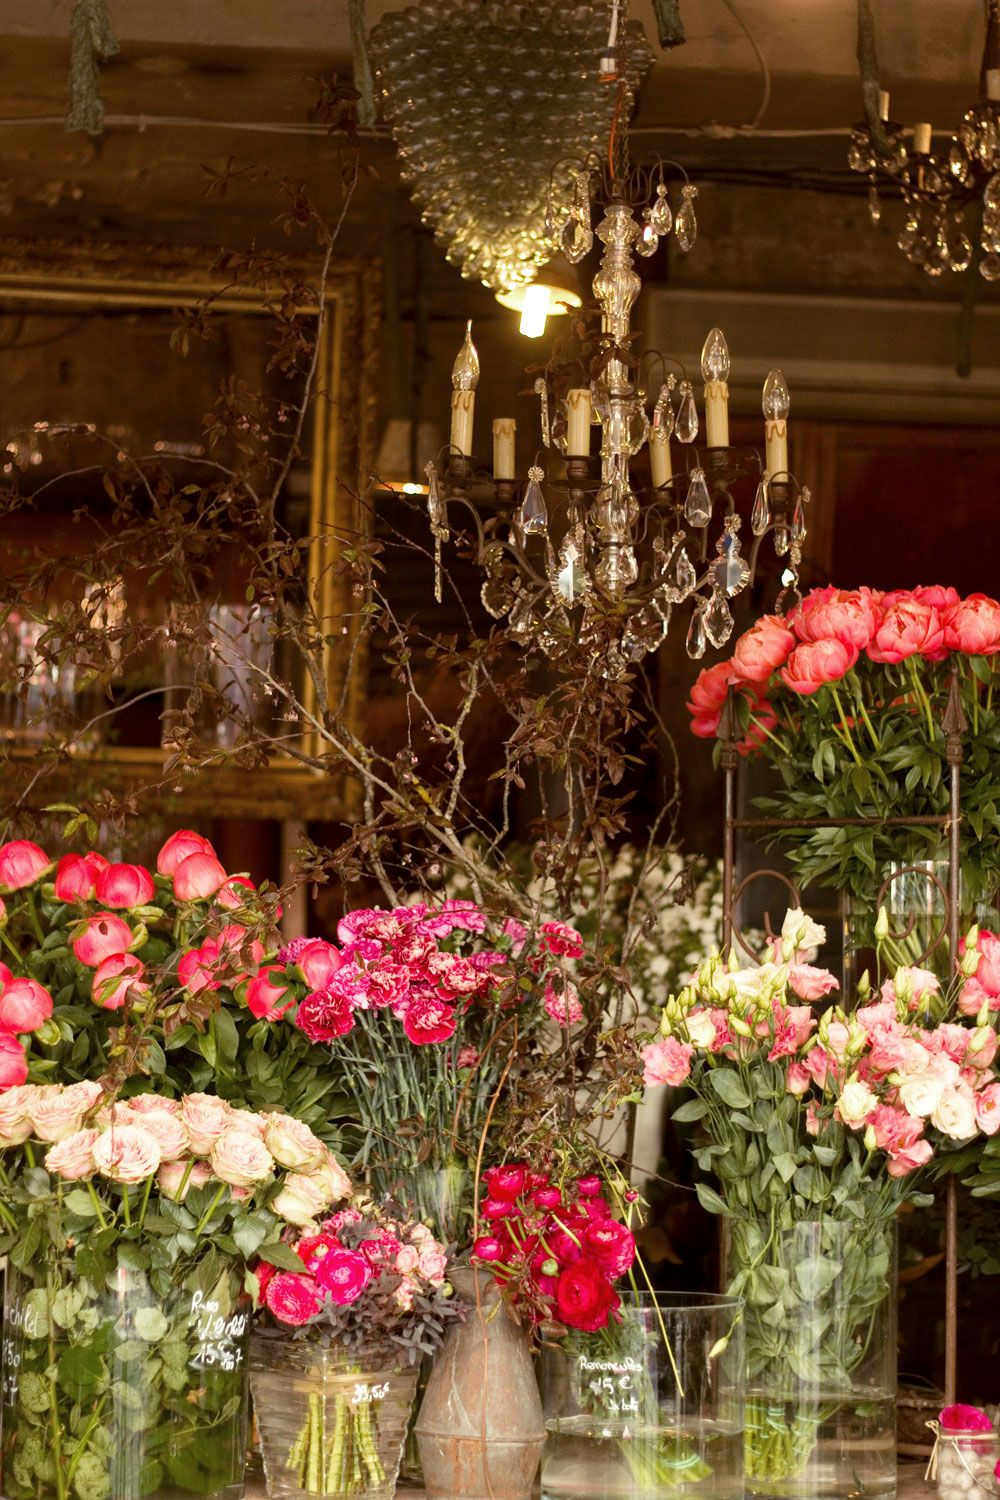 Best paris plant and flower shops larrosoir boutique pinterest this post is all about my favourite paris flowers shops some suggested by lovely peeps on ig and some discovered on our ten mile a day walks of the city izmirmasajfo